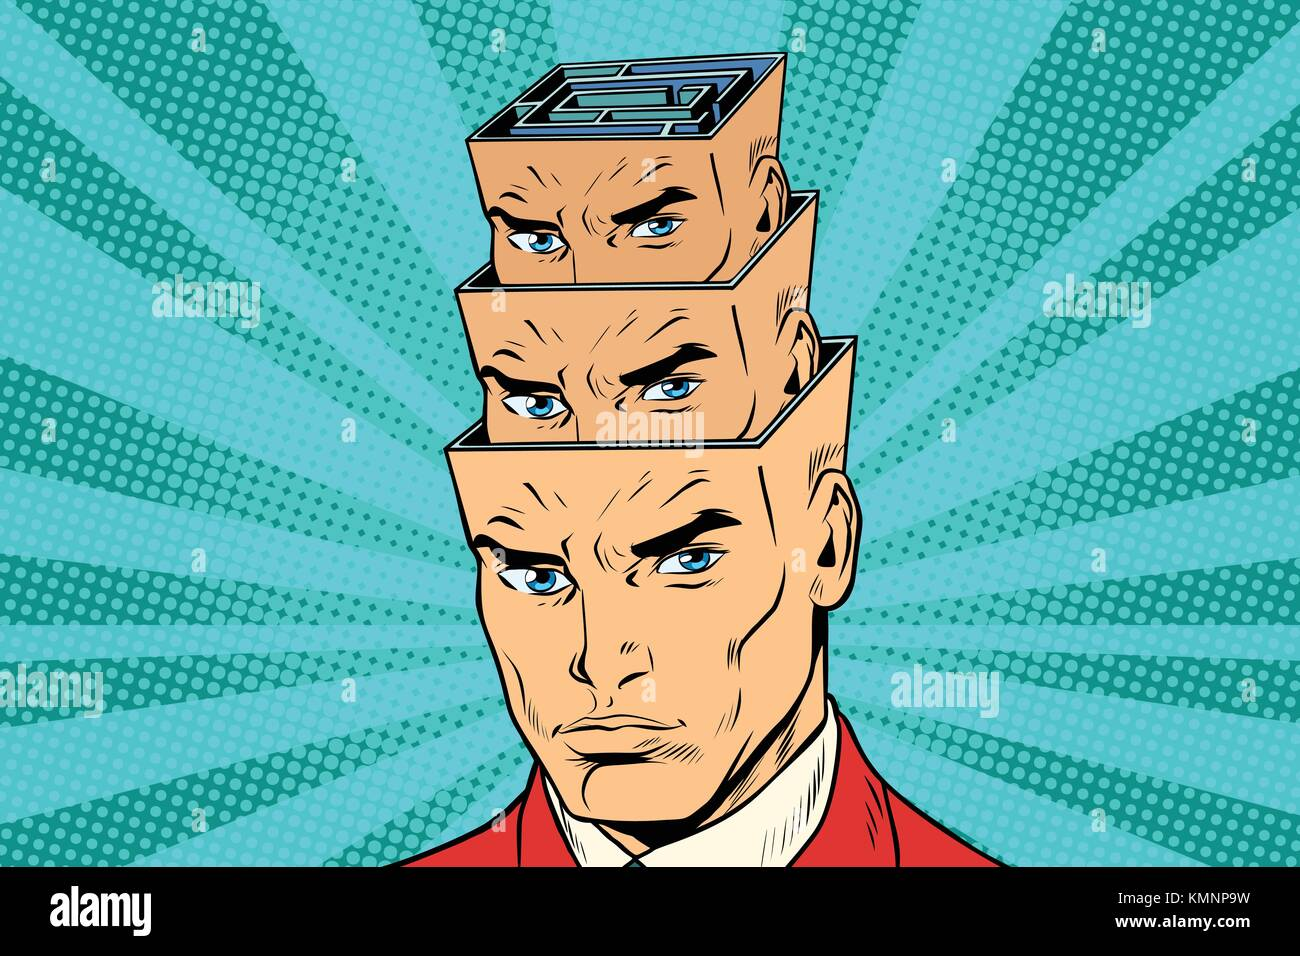 head a maze of personality inside the head. Medicine and psychology. Mental disorders. Pop art retro vector illustration - Stock Vector